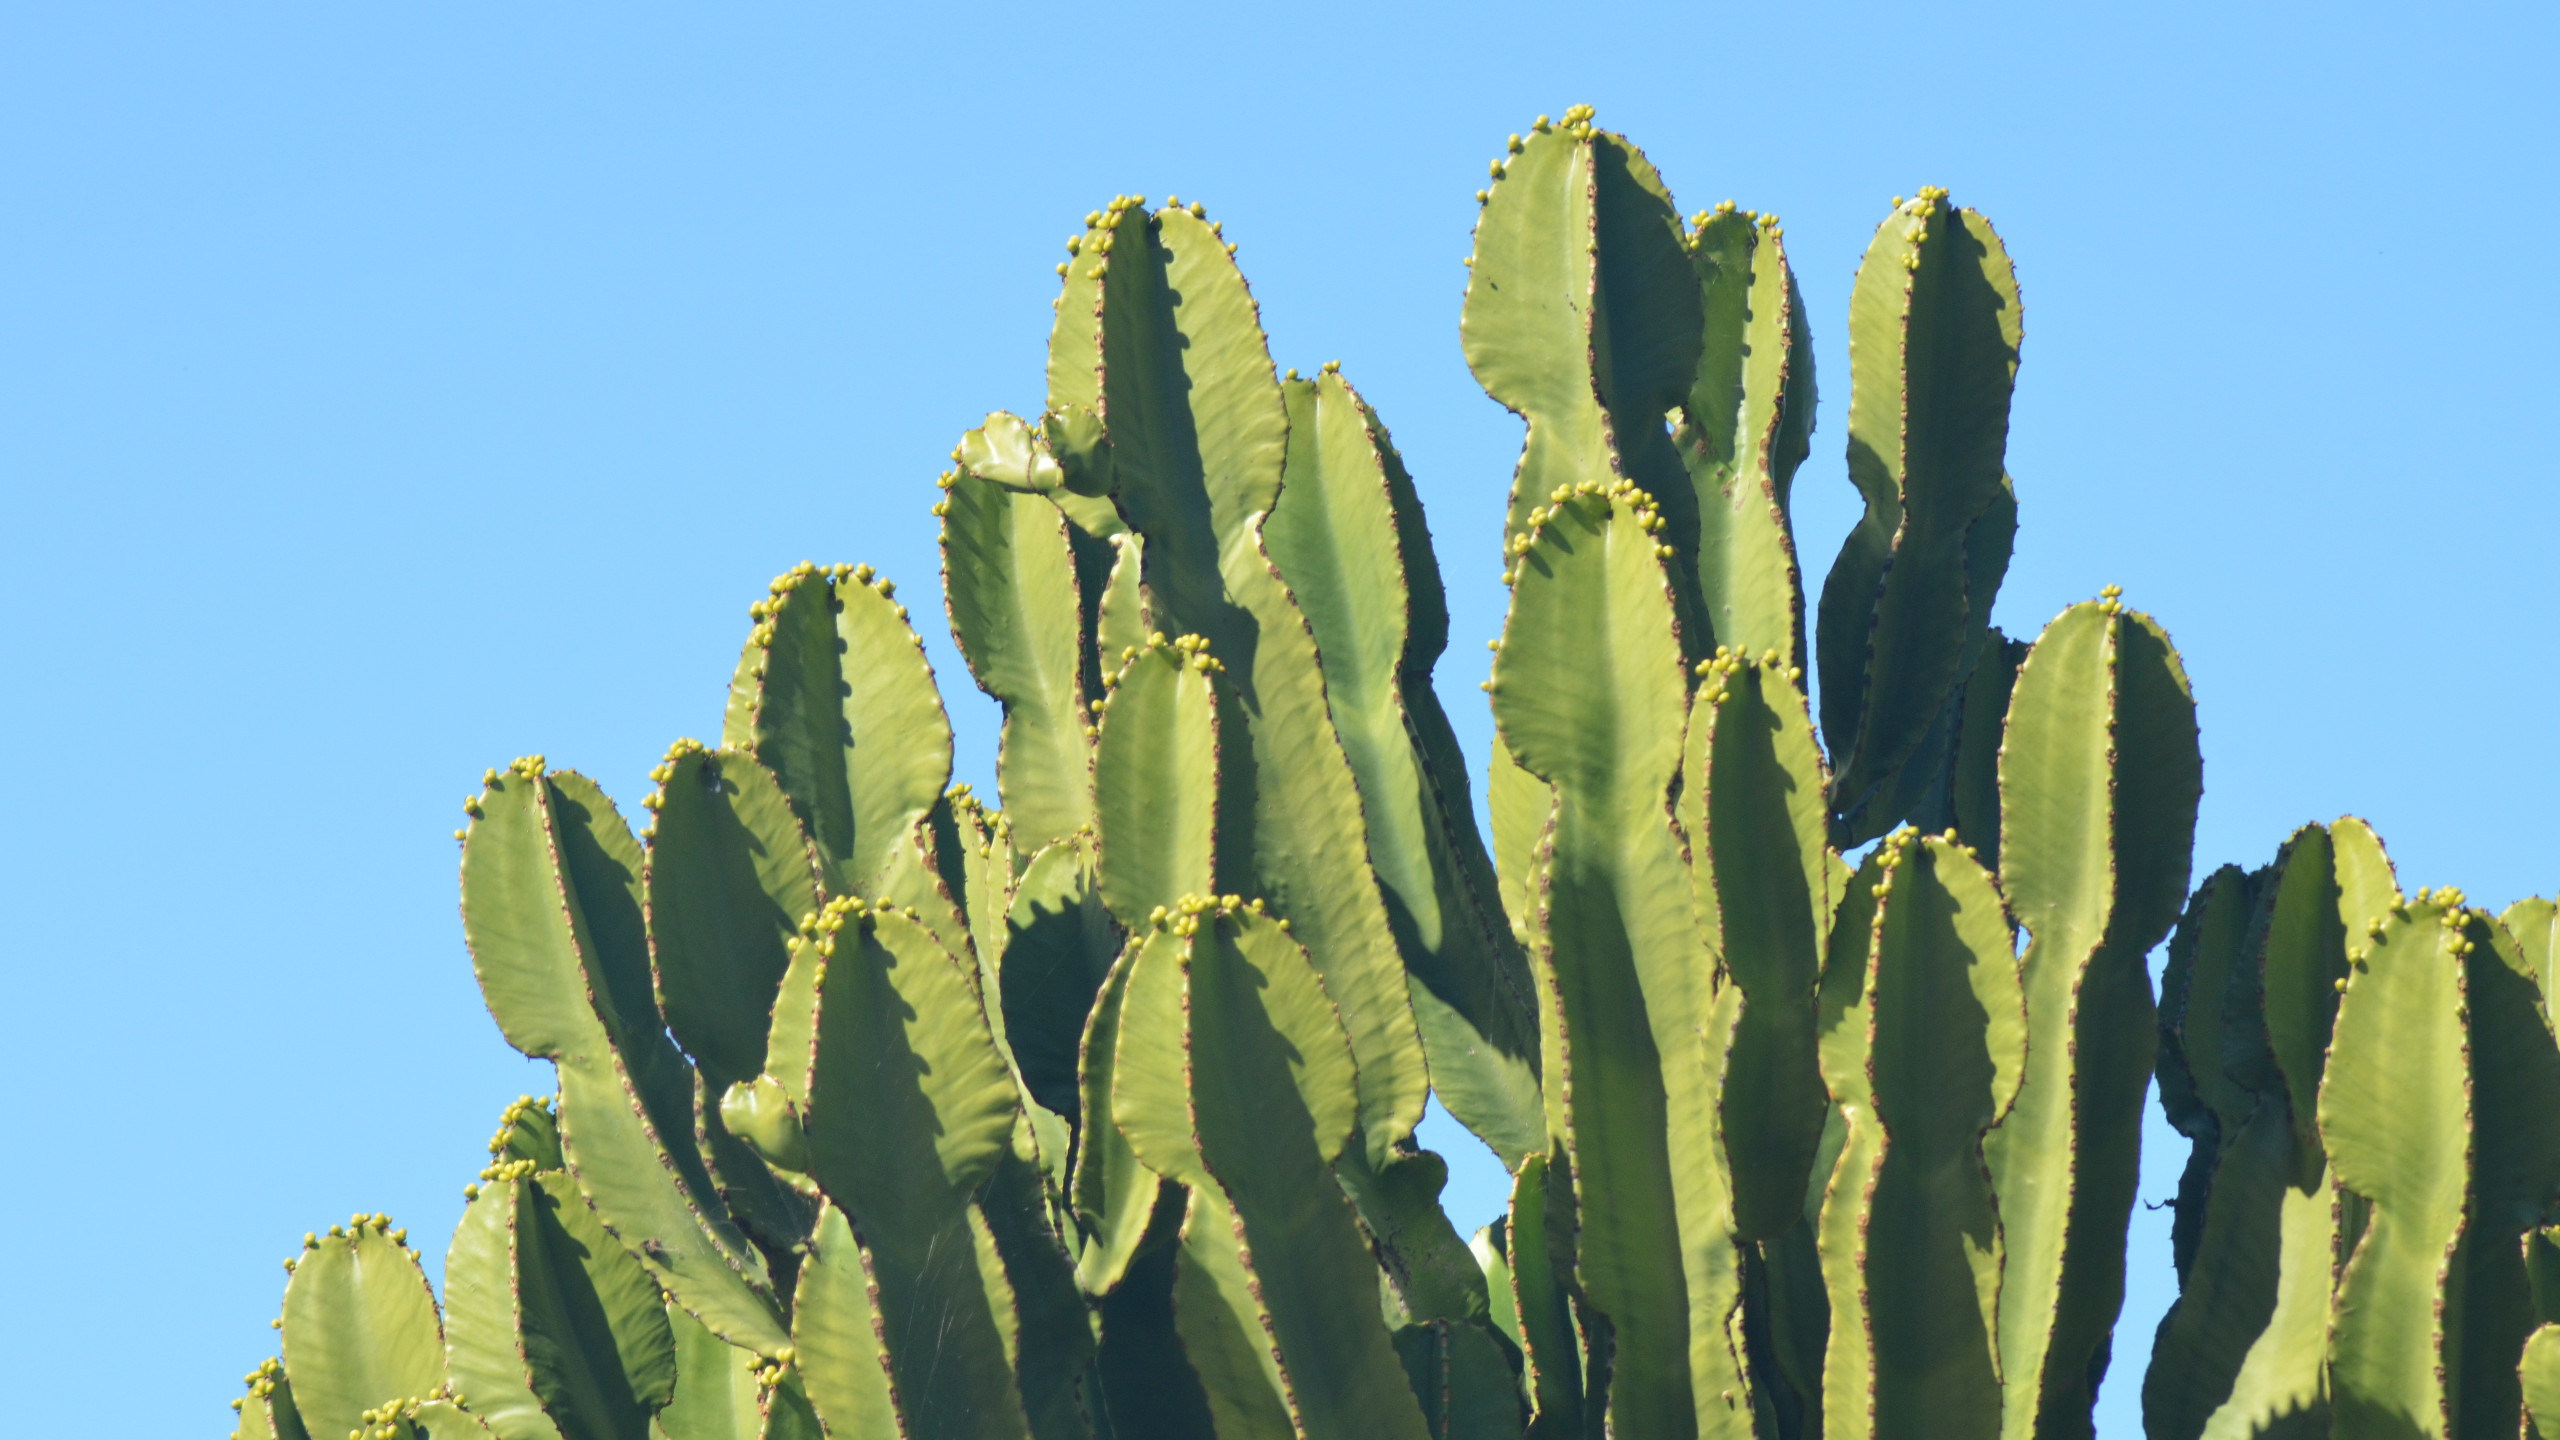 cactus wallpaper background 59186